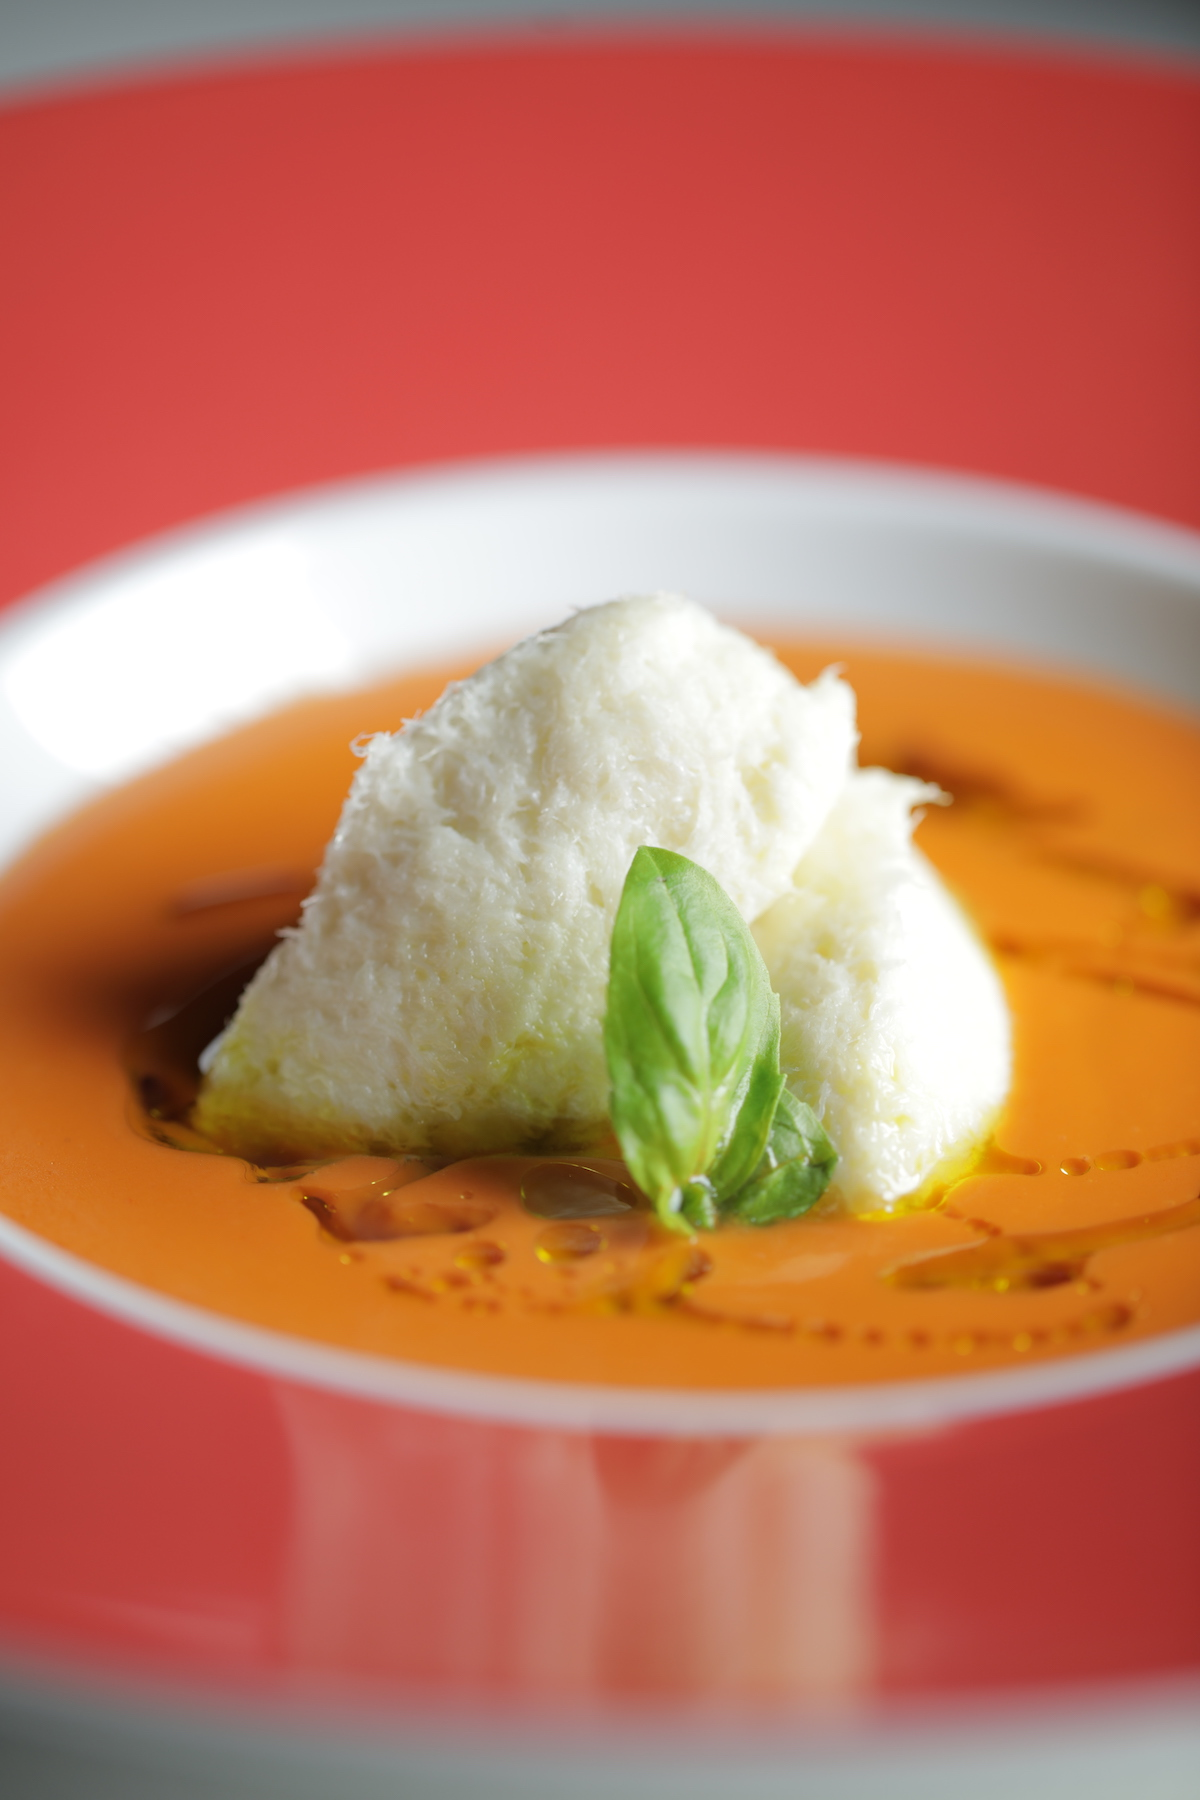 taste of courmayeur - Gazpacho DENIS PEDRON DOMENICO SARONNO